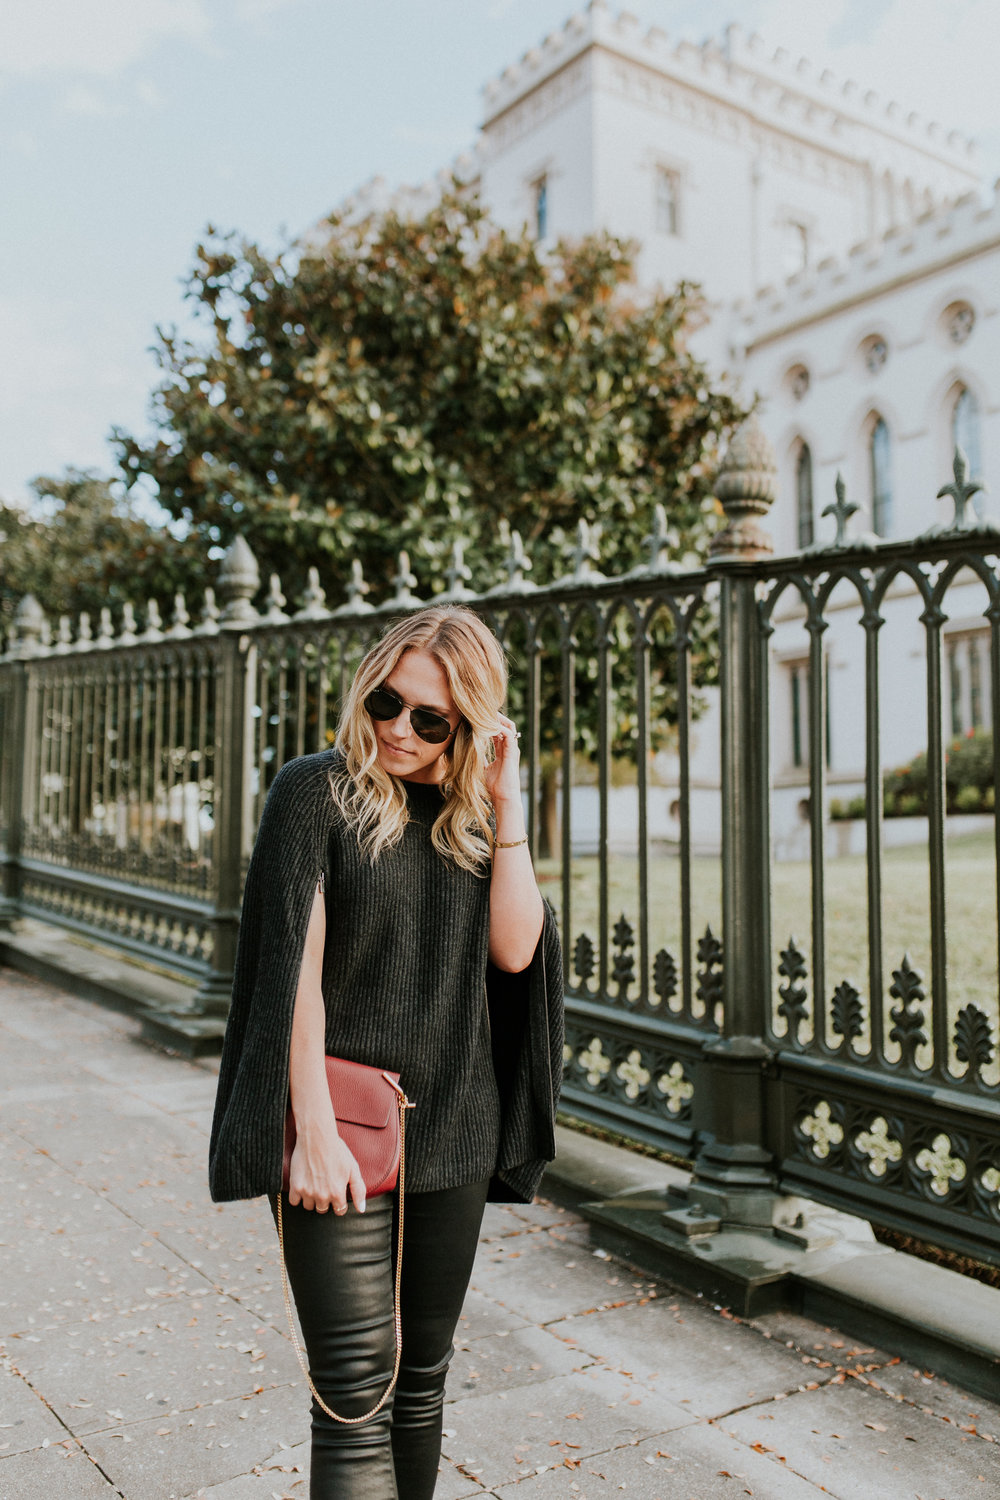 Blogger Gracefully Taylored in Autumn Cashmere Cape and Dee Keller Shoes(4).jpg